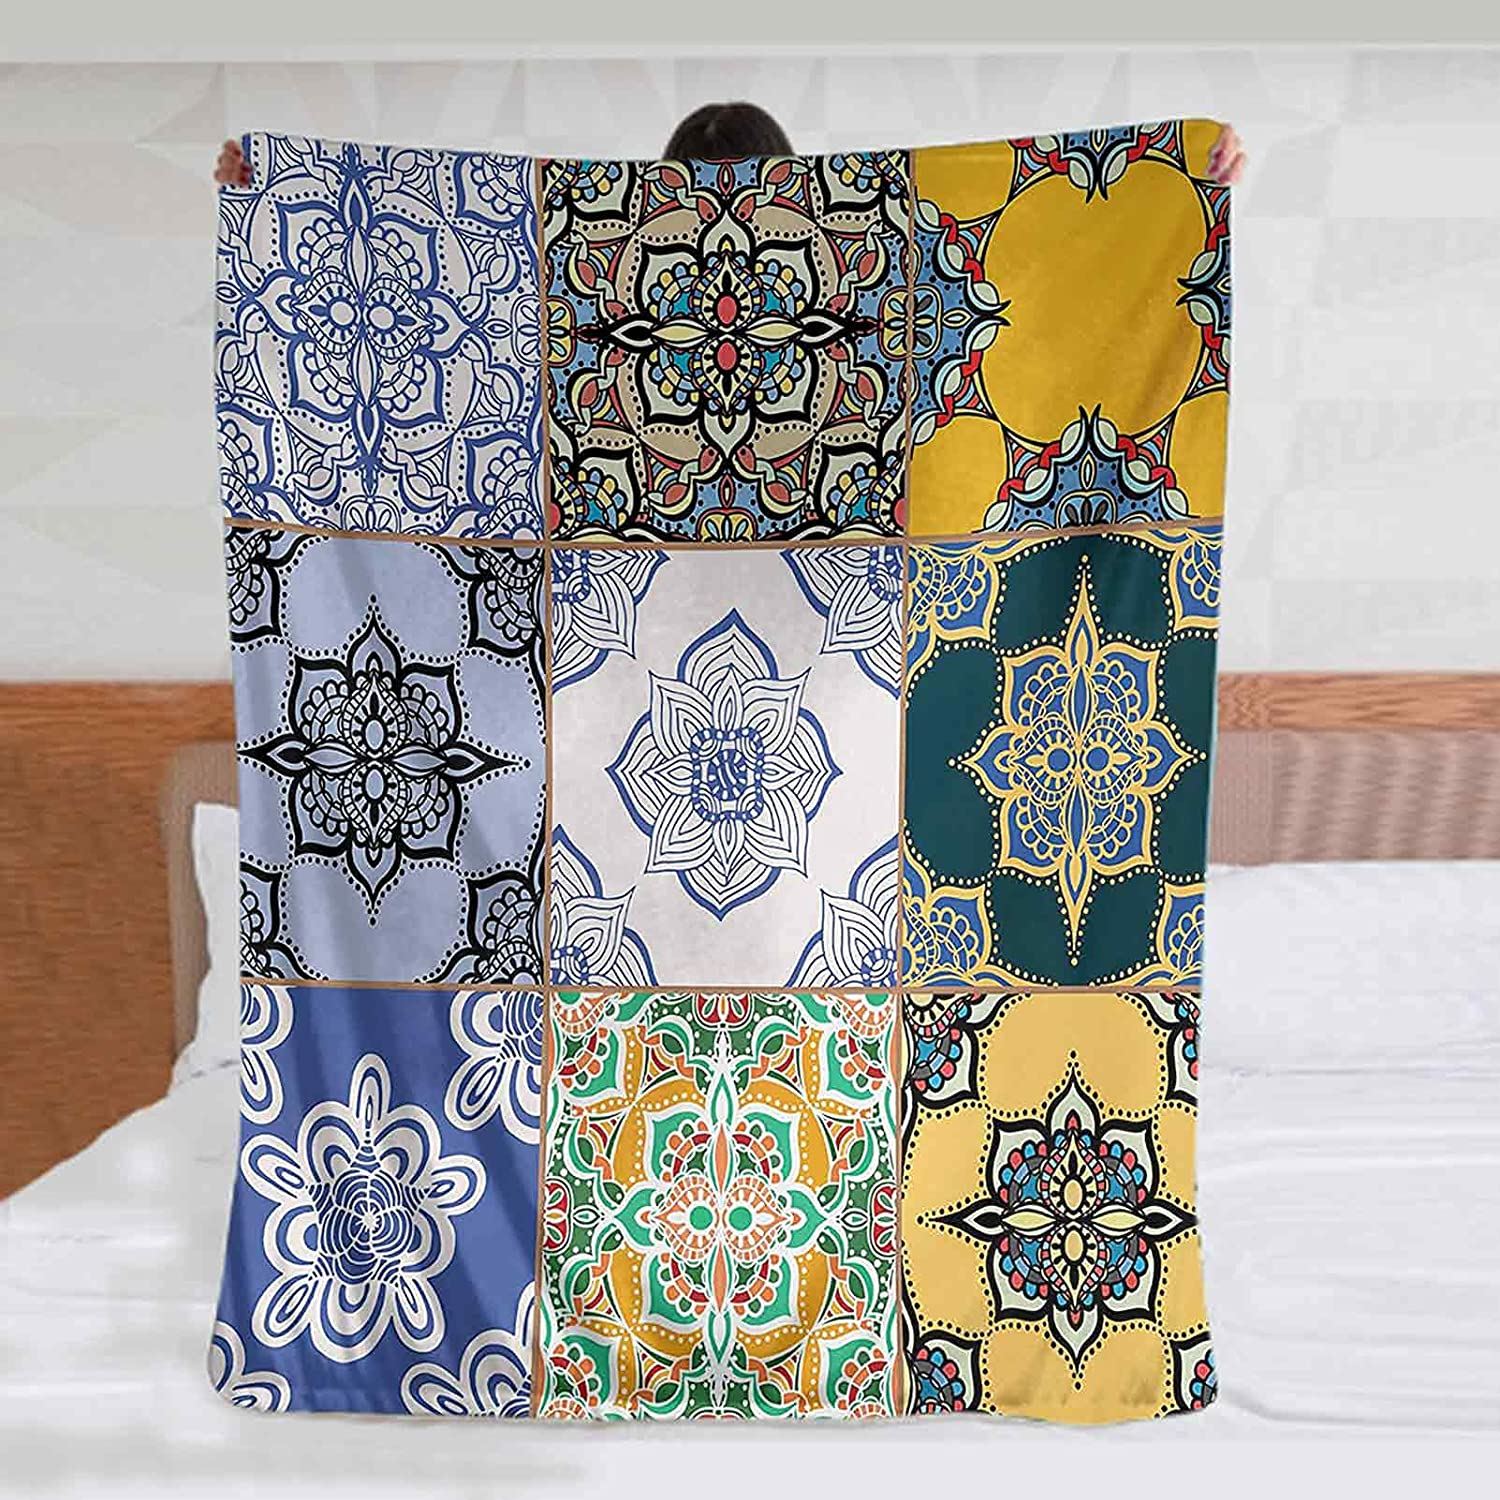 Moroccan Personalized Blankets with Super popular specialty store Picture Portu and Spasm price 60